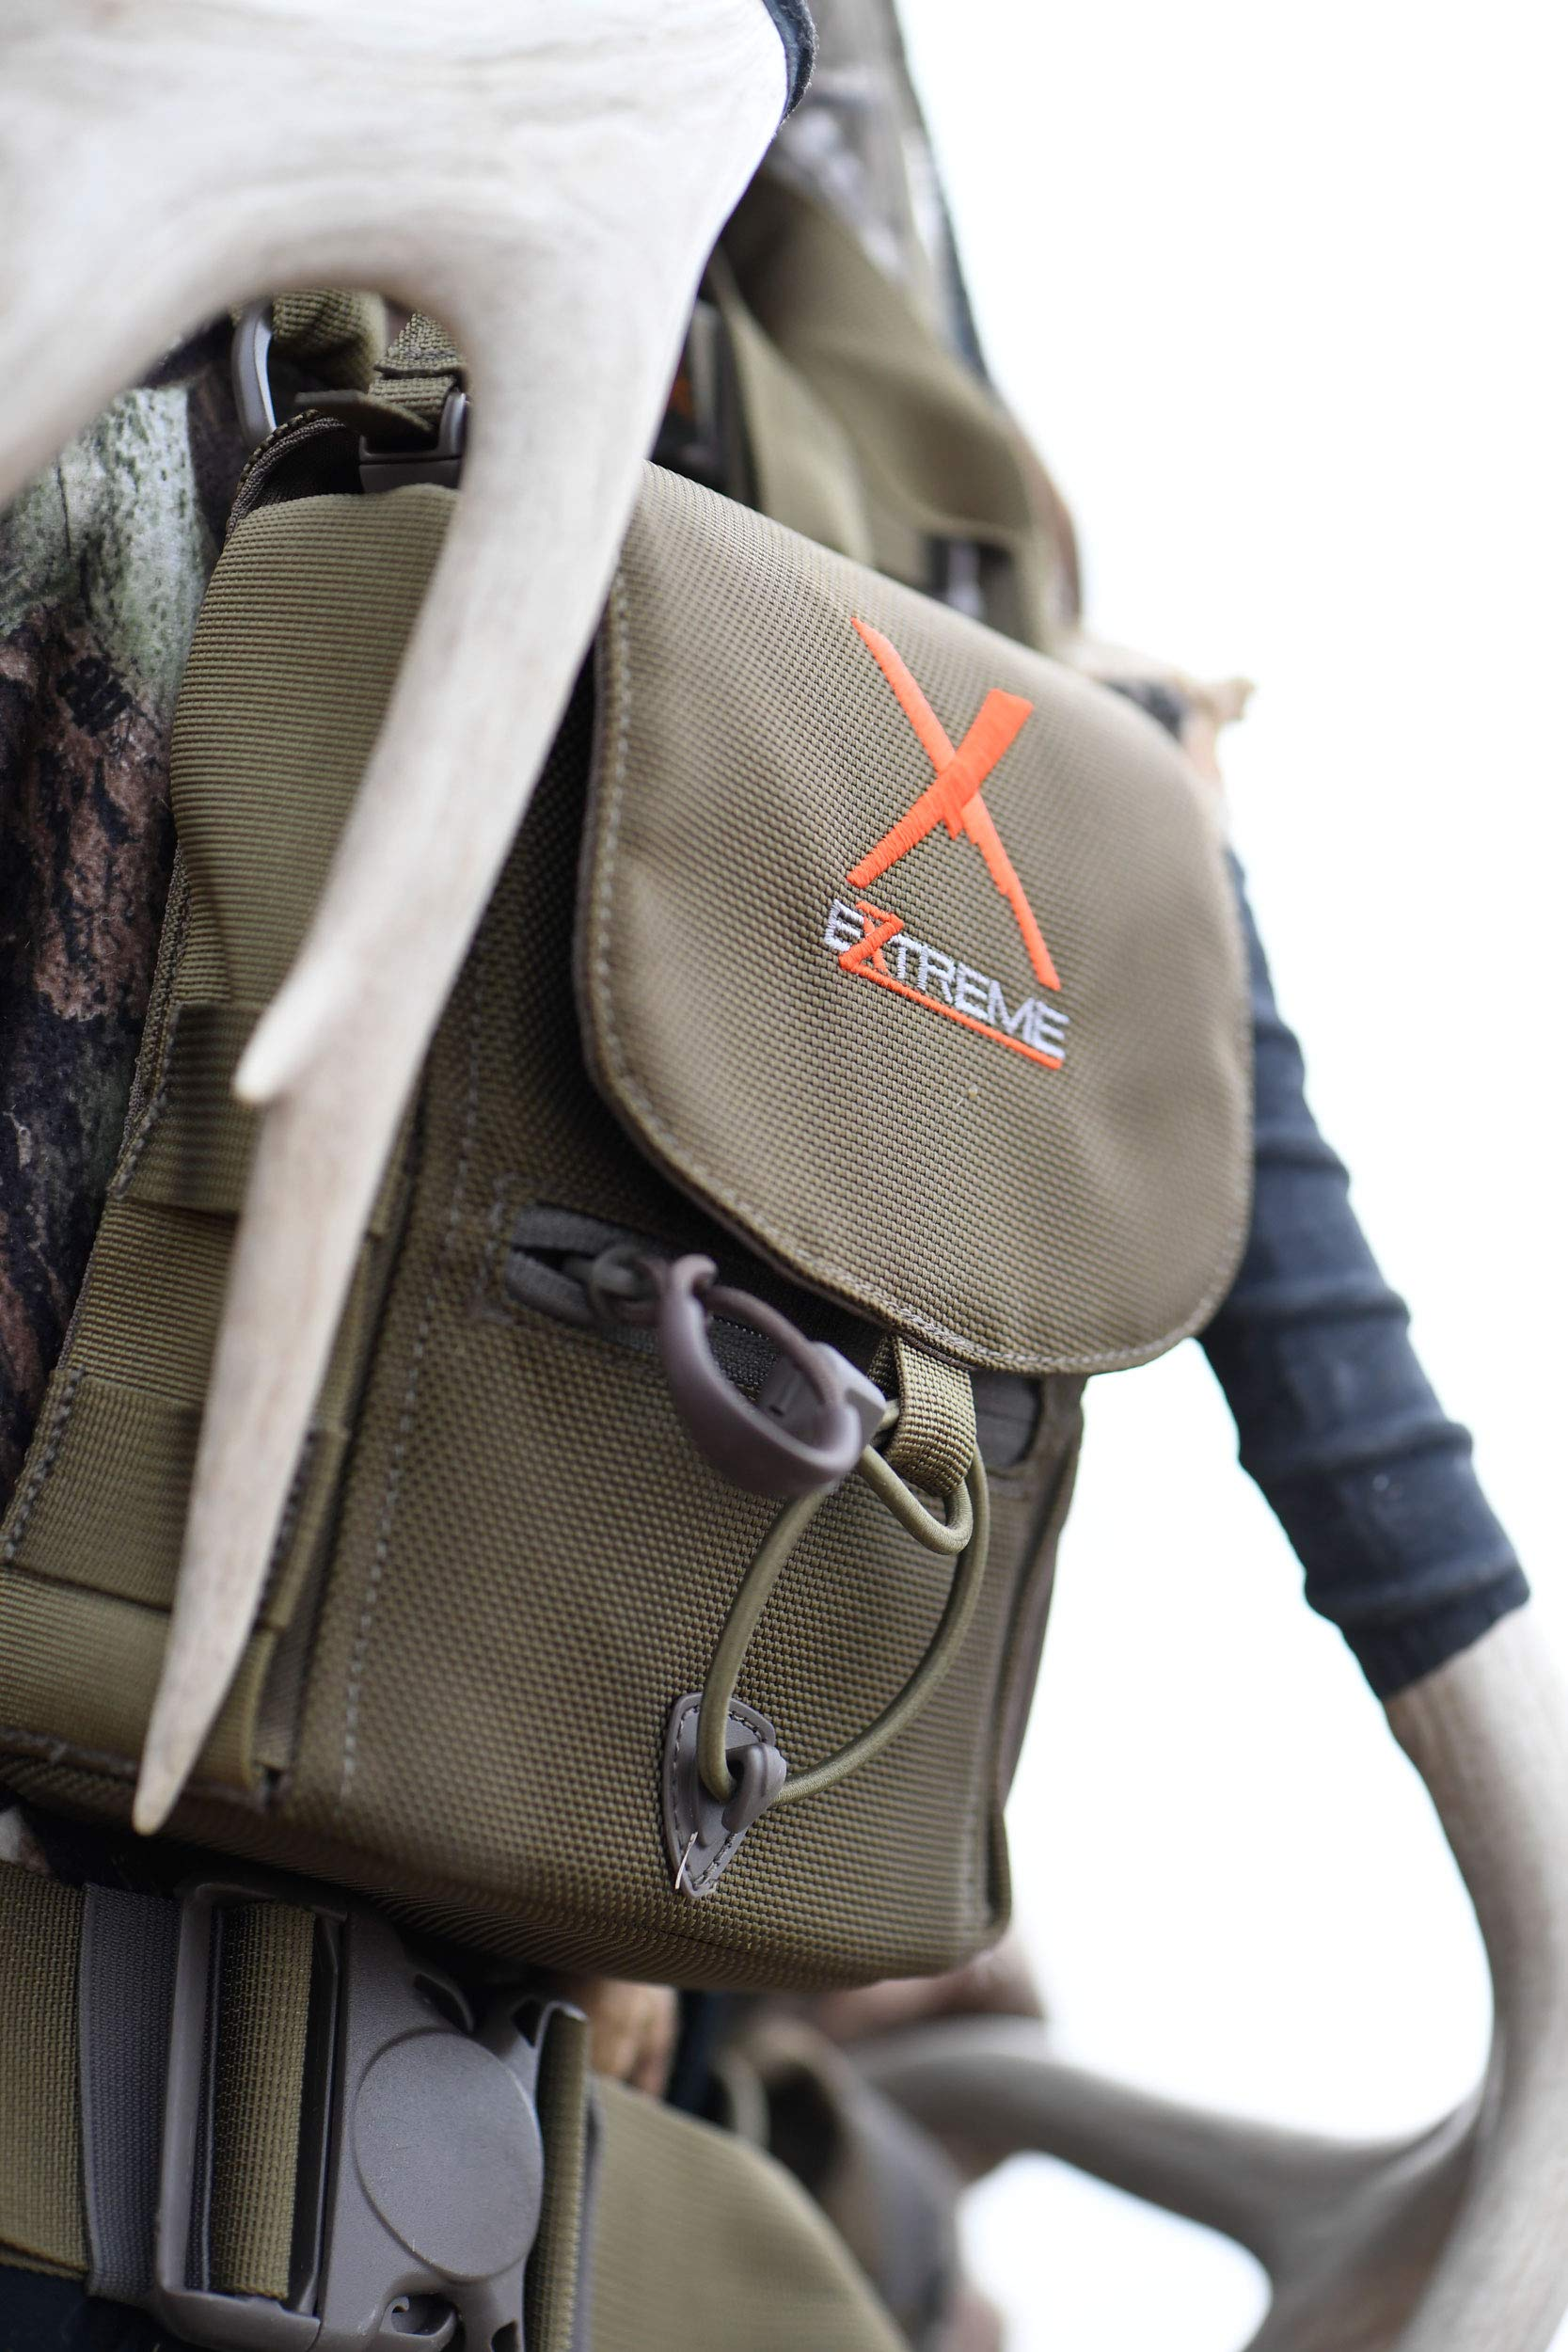 ALPS OutdoorZ Extreme Bino Harness X, Cervidae by ALPS OutdoorZ (Image #14)